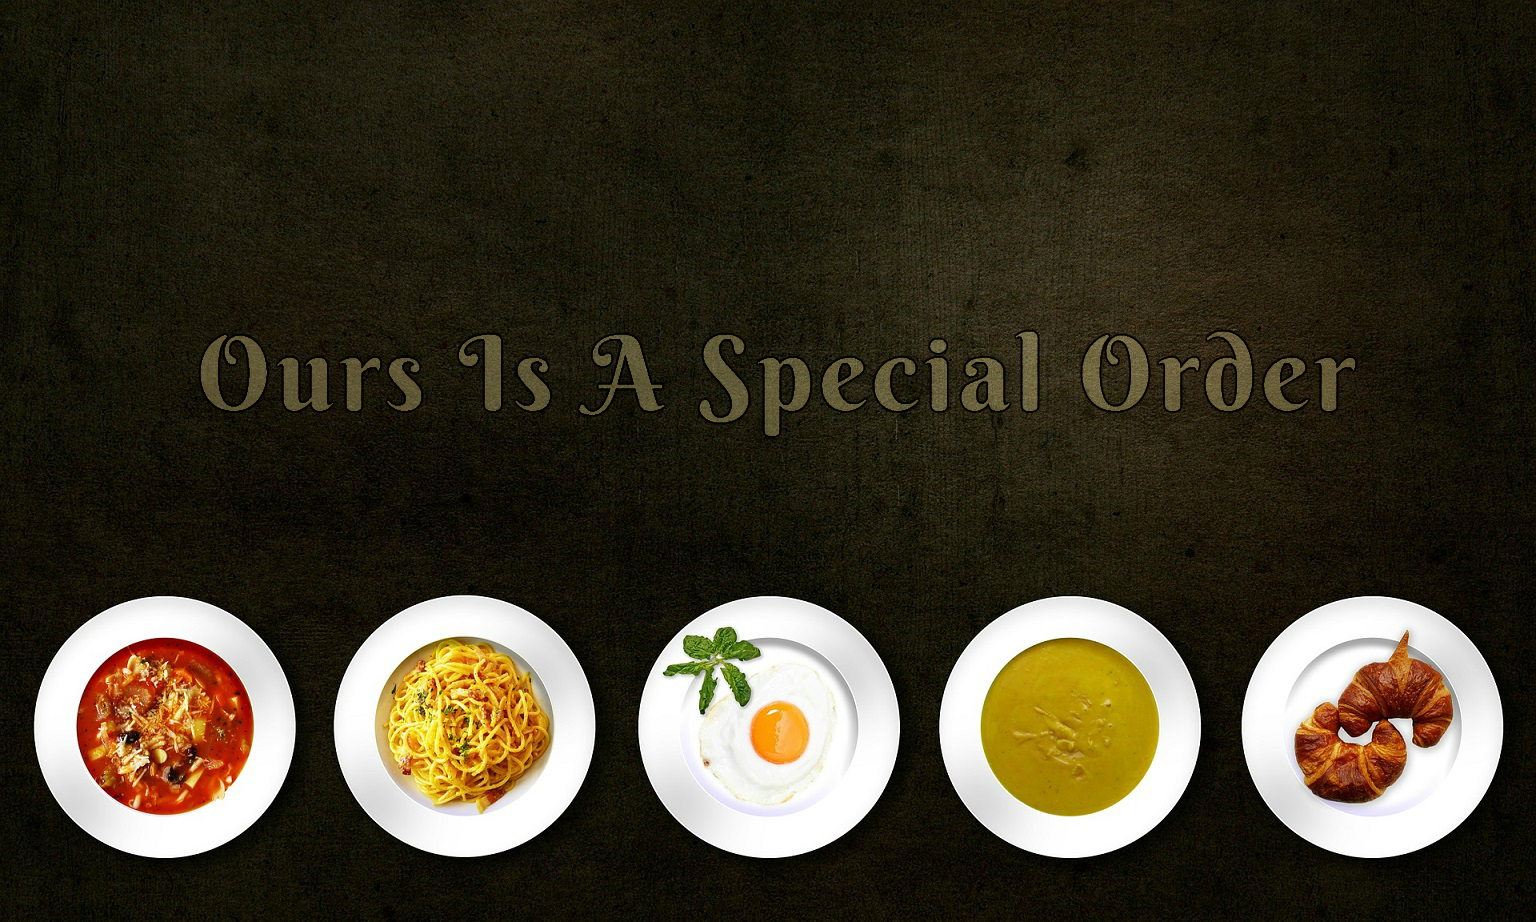 Ours-Is-A-Special-Order